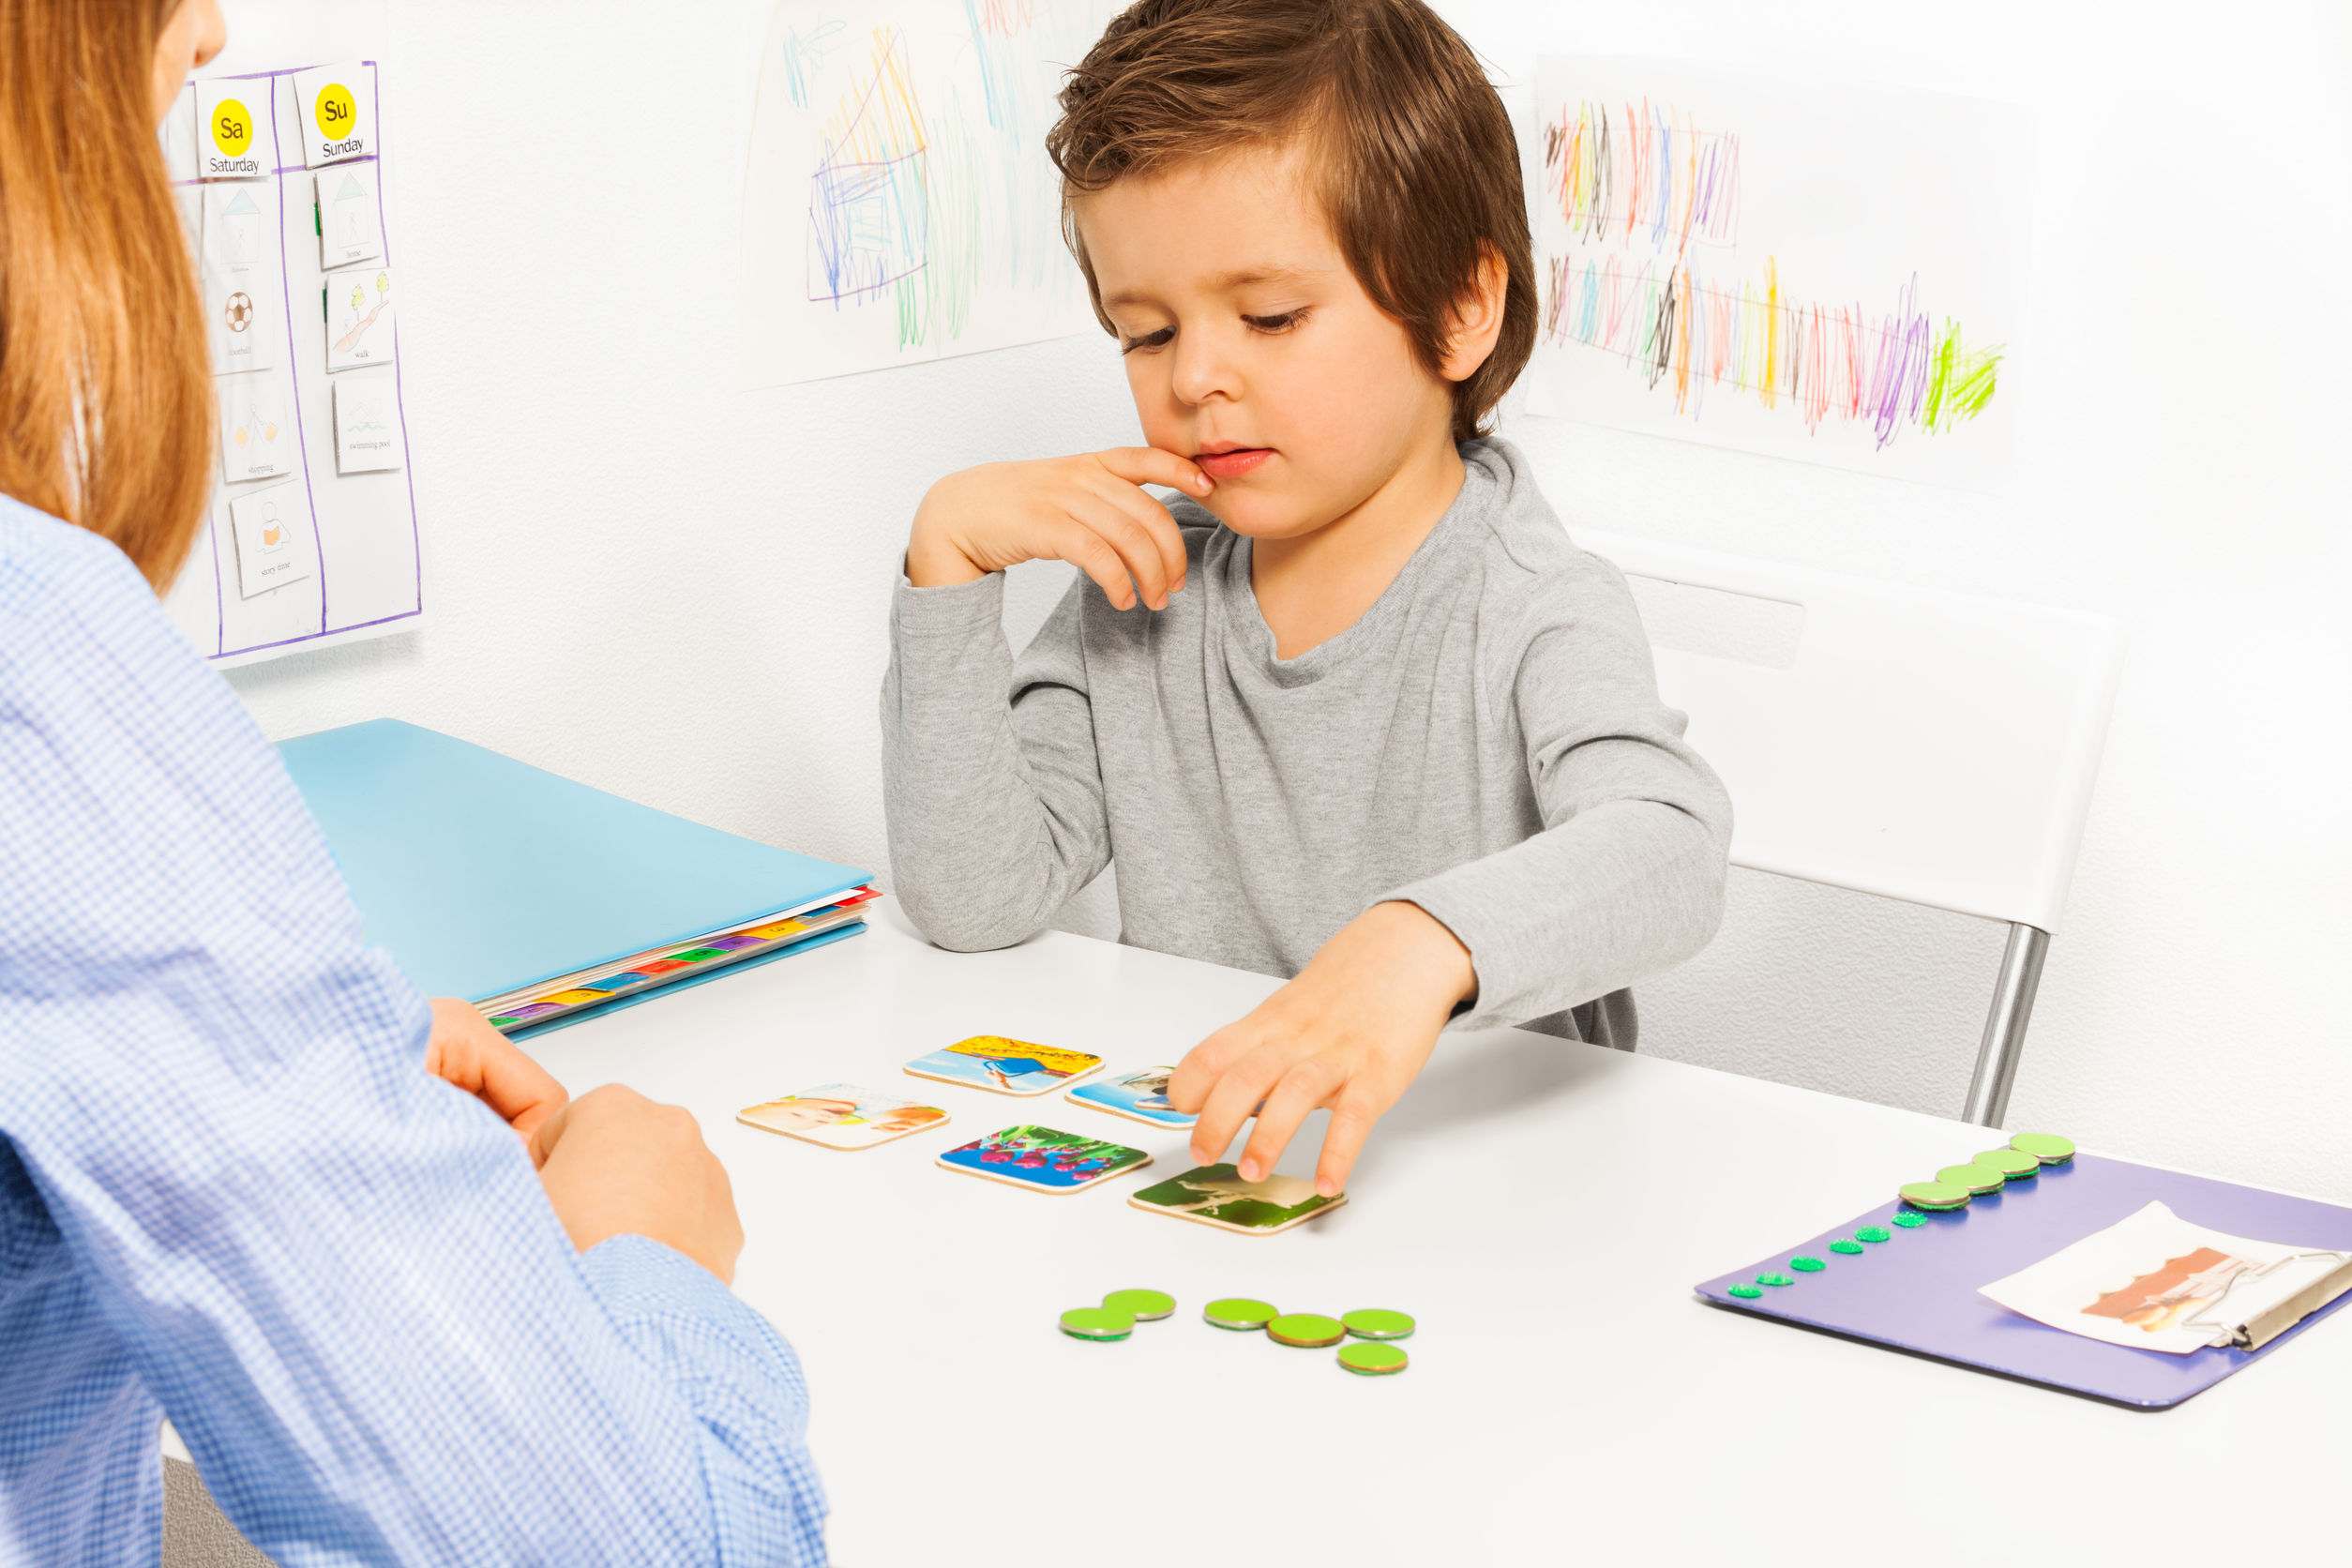 40825008 - preschooler boy and developing game with card